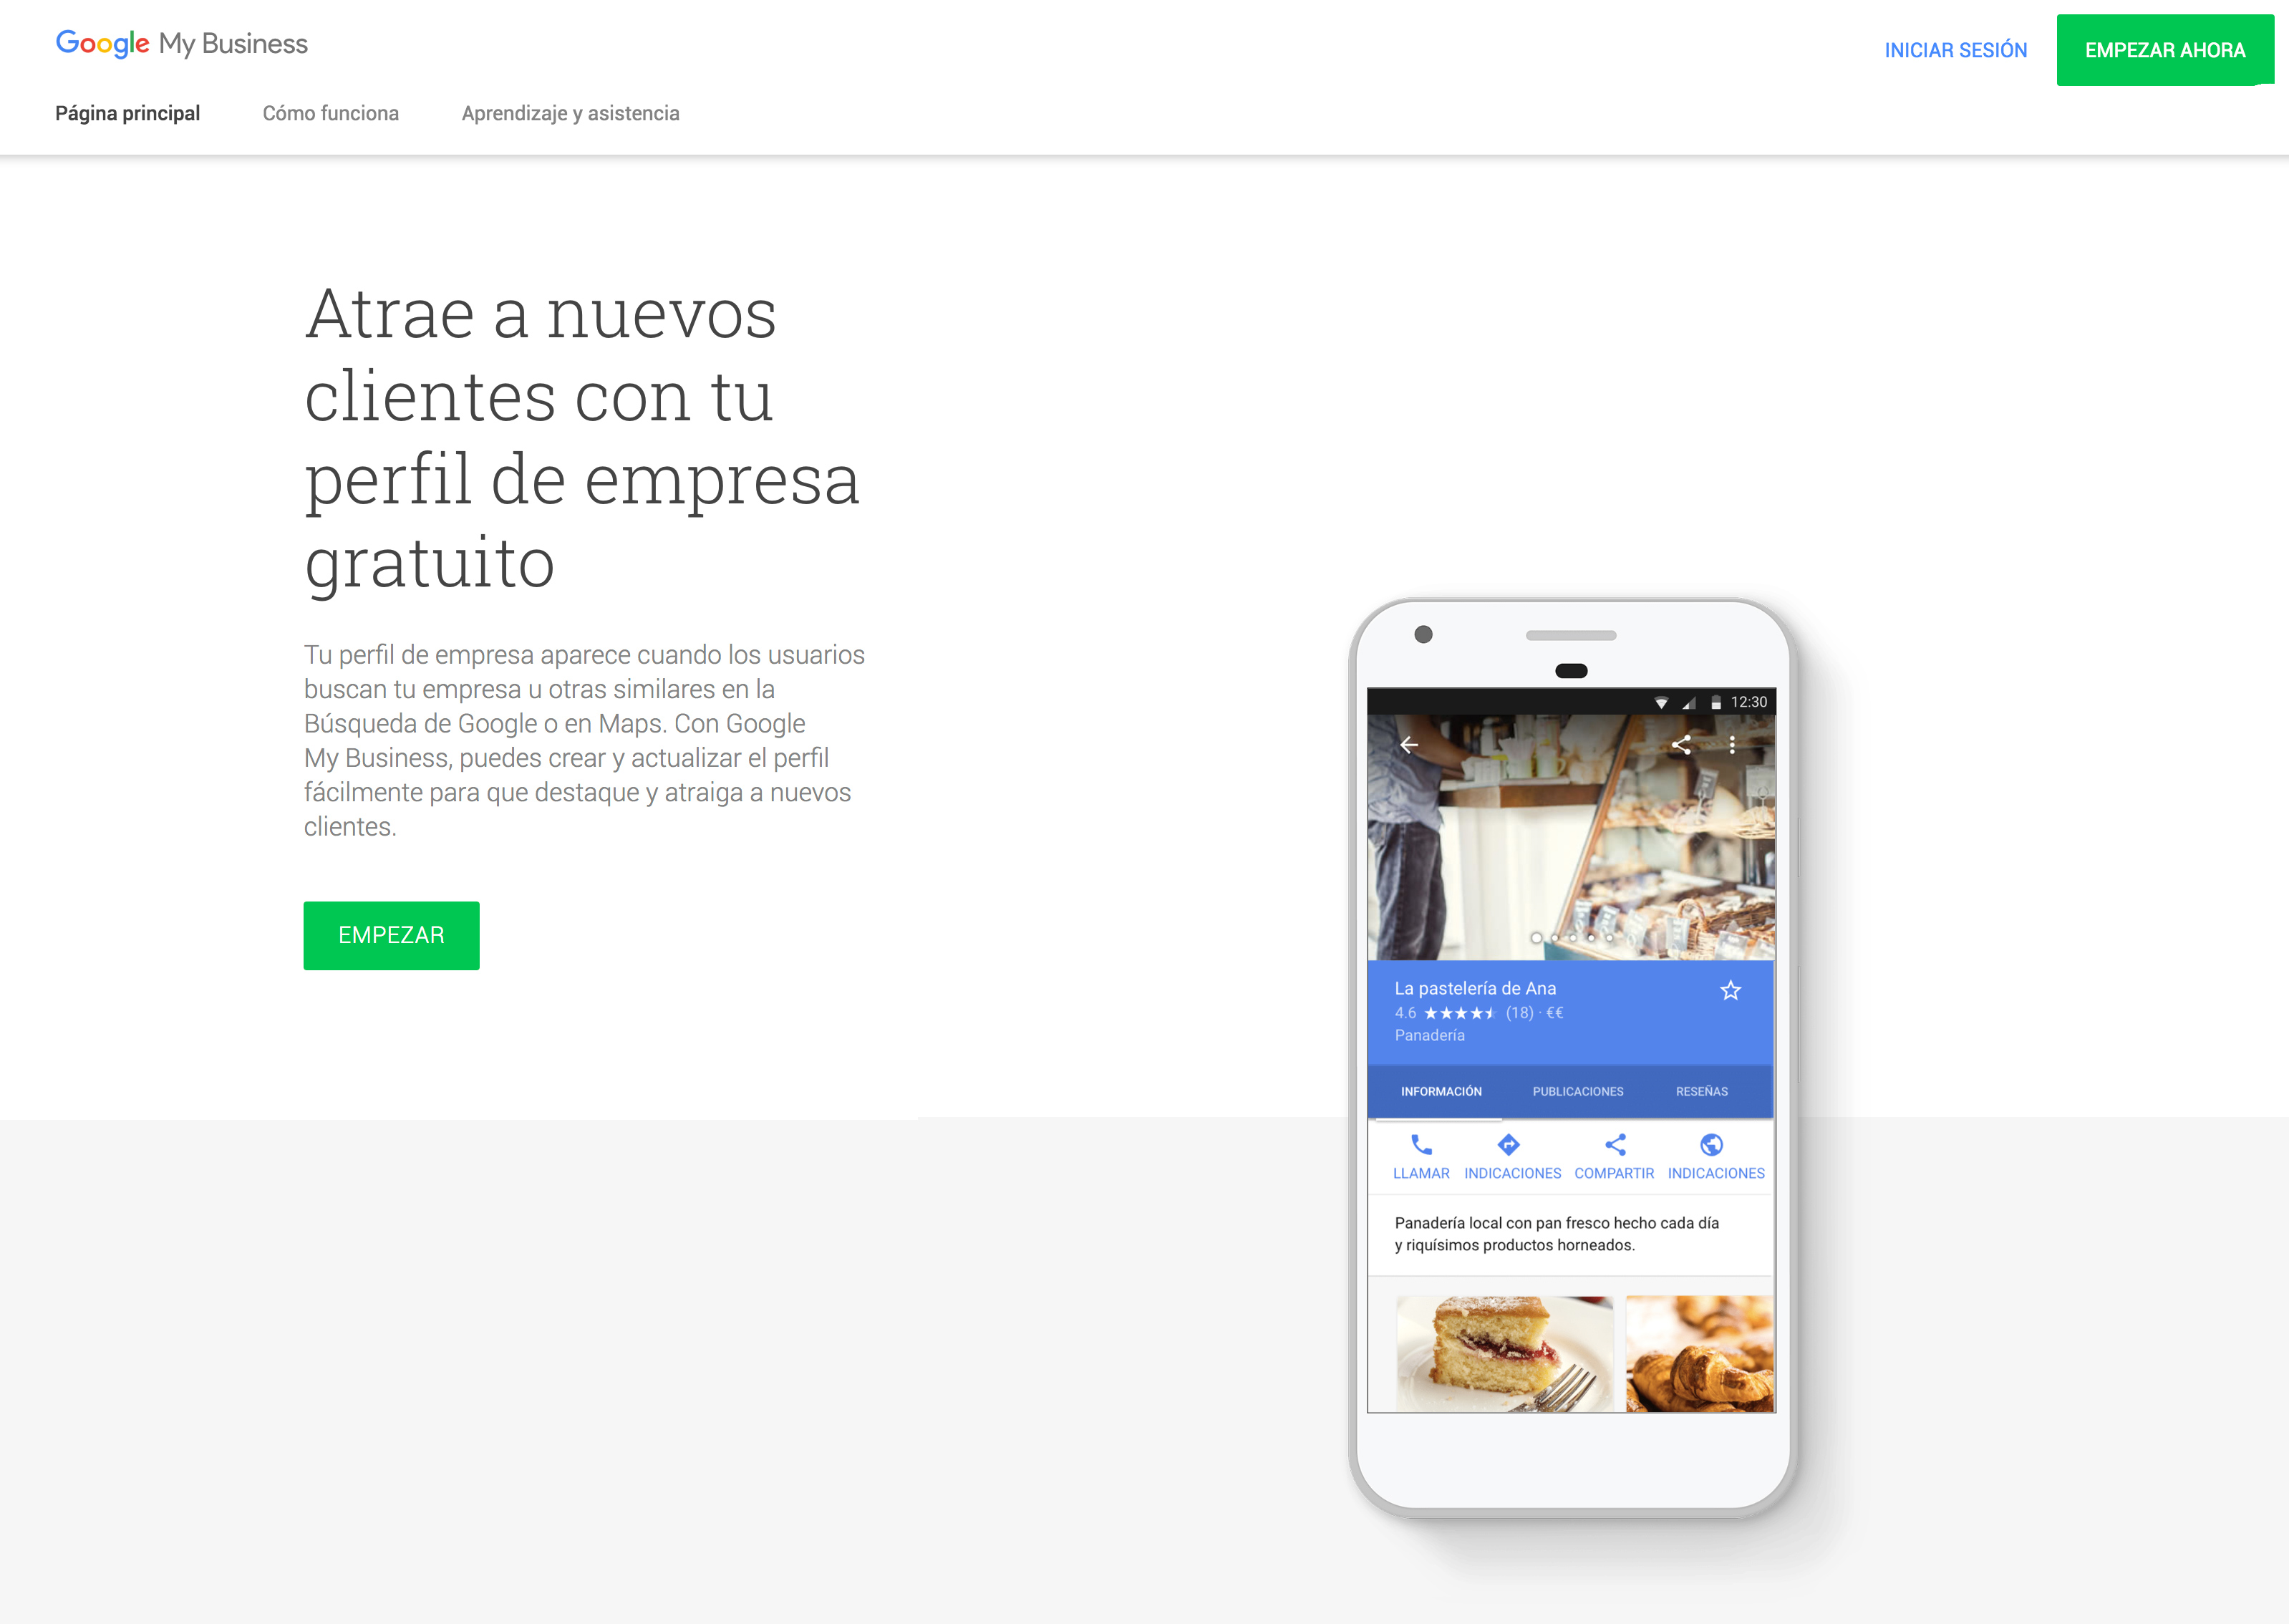 pagina web de google my business para empezar